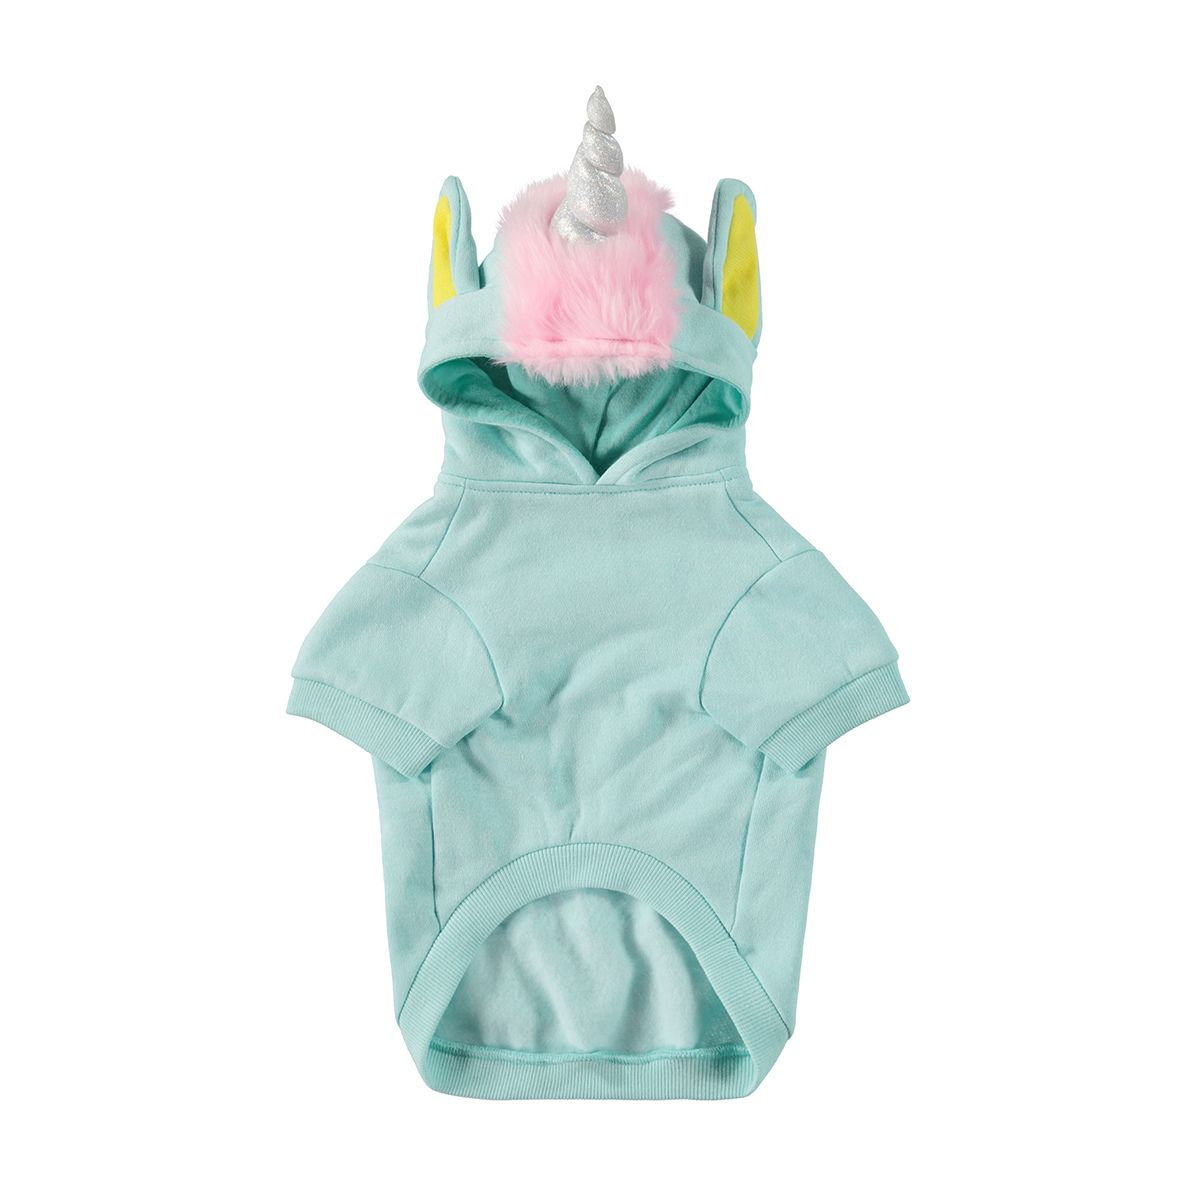 Unicorn Pet Hoody Small Kmart Unicorn Stuffed Animal Pets Hoodies